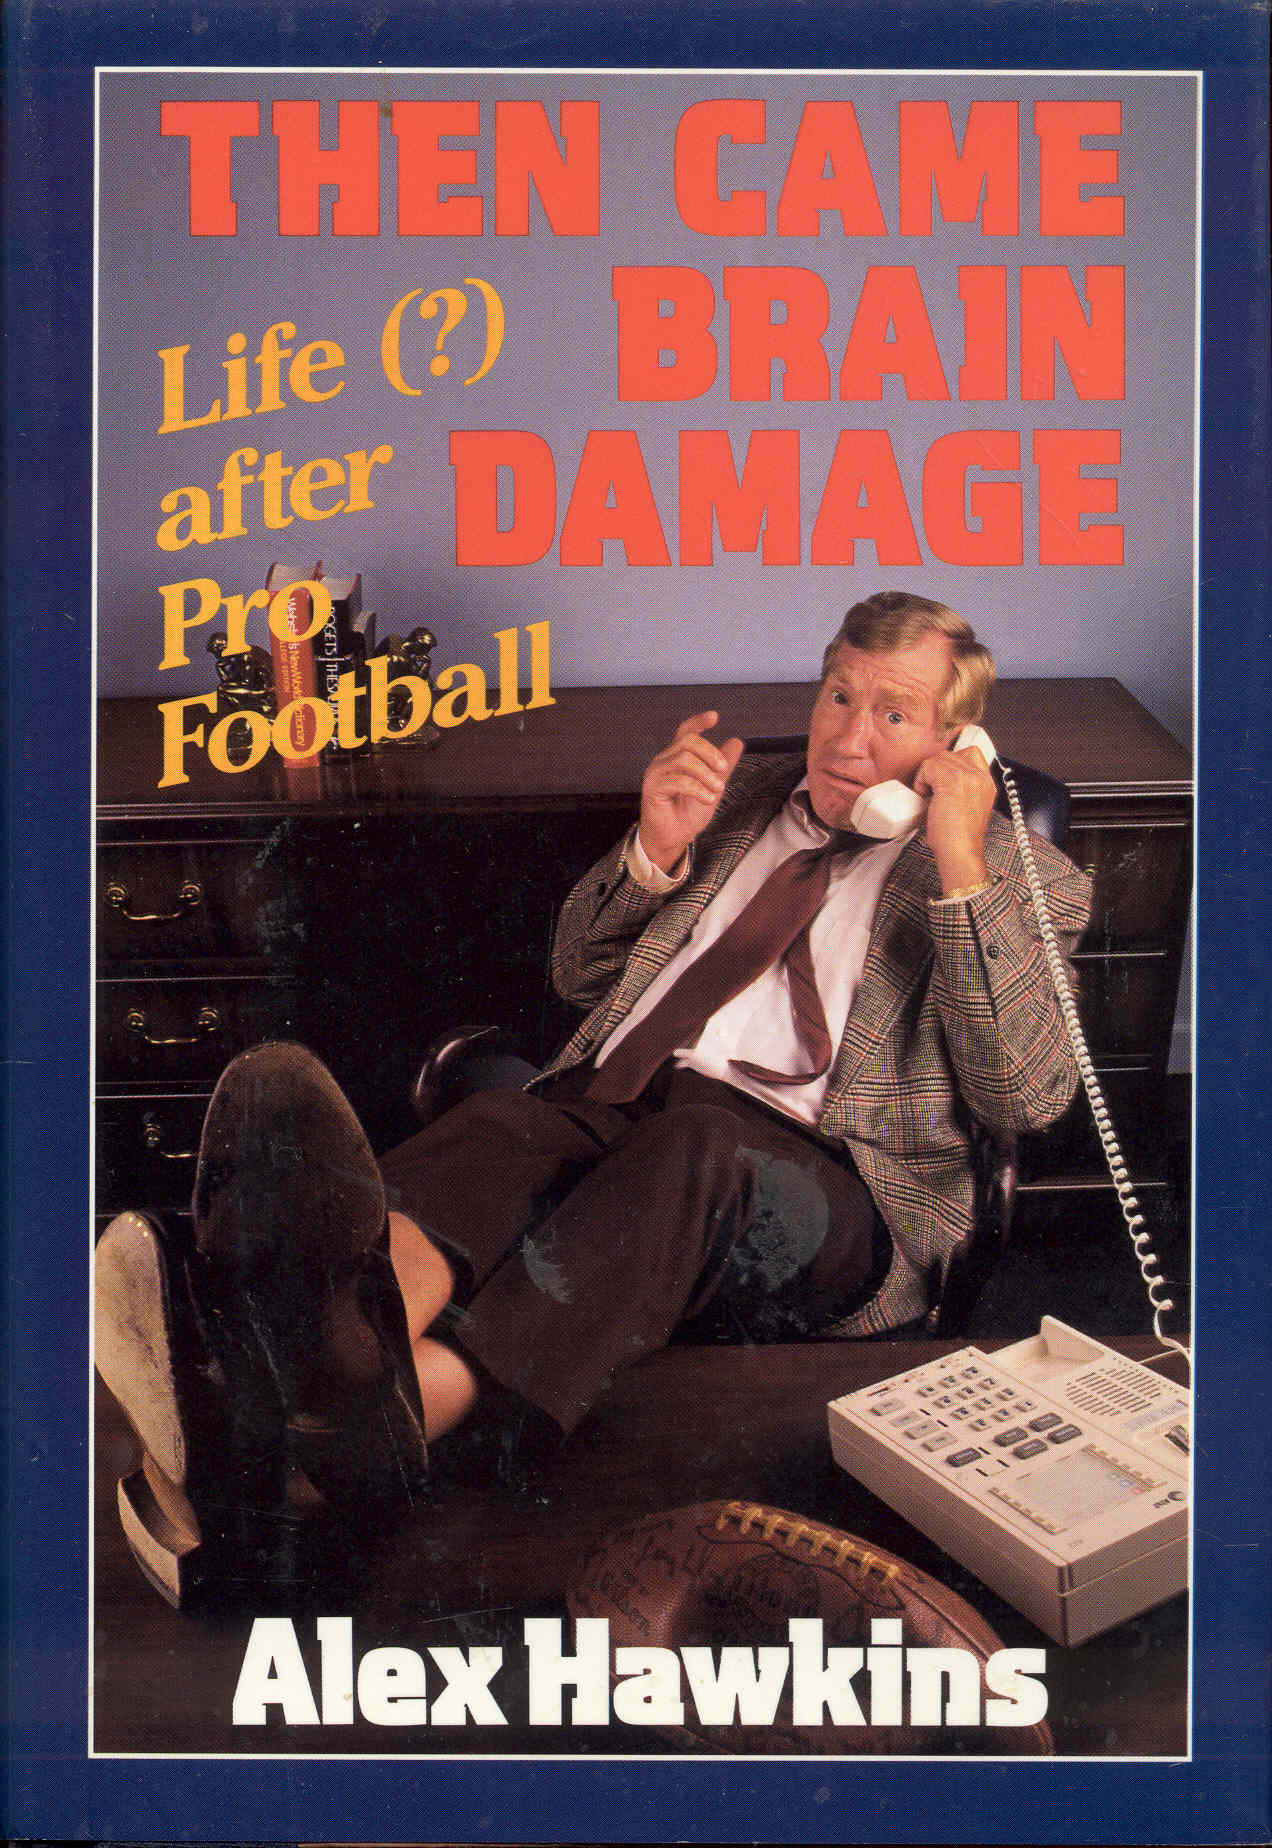 Image for Then Came Brain Damage: Life (?) After Pro Football